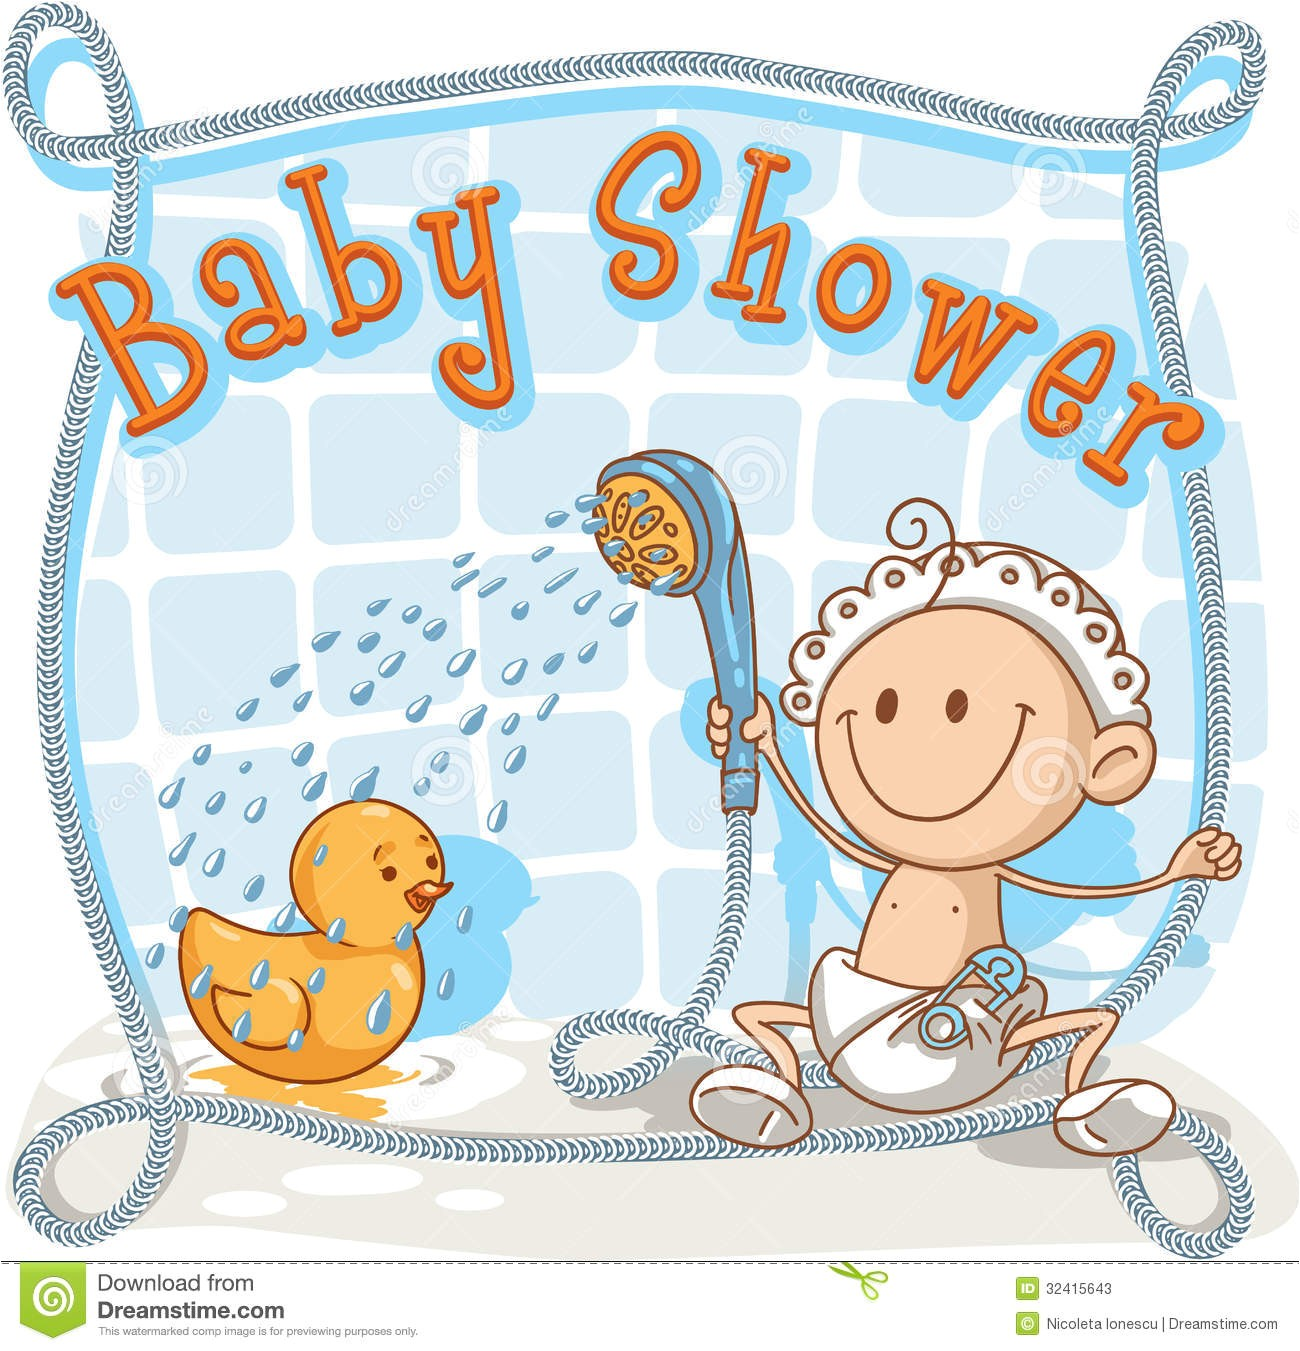 stock photos baby shower cartoon invitation vector showering his rubber ducky ai vector file included image